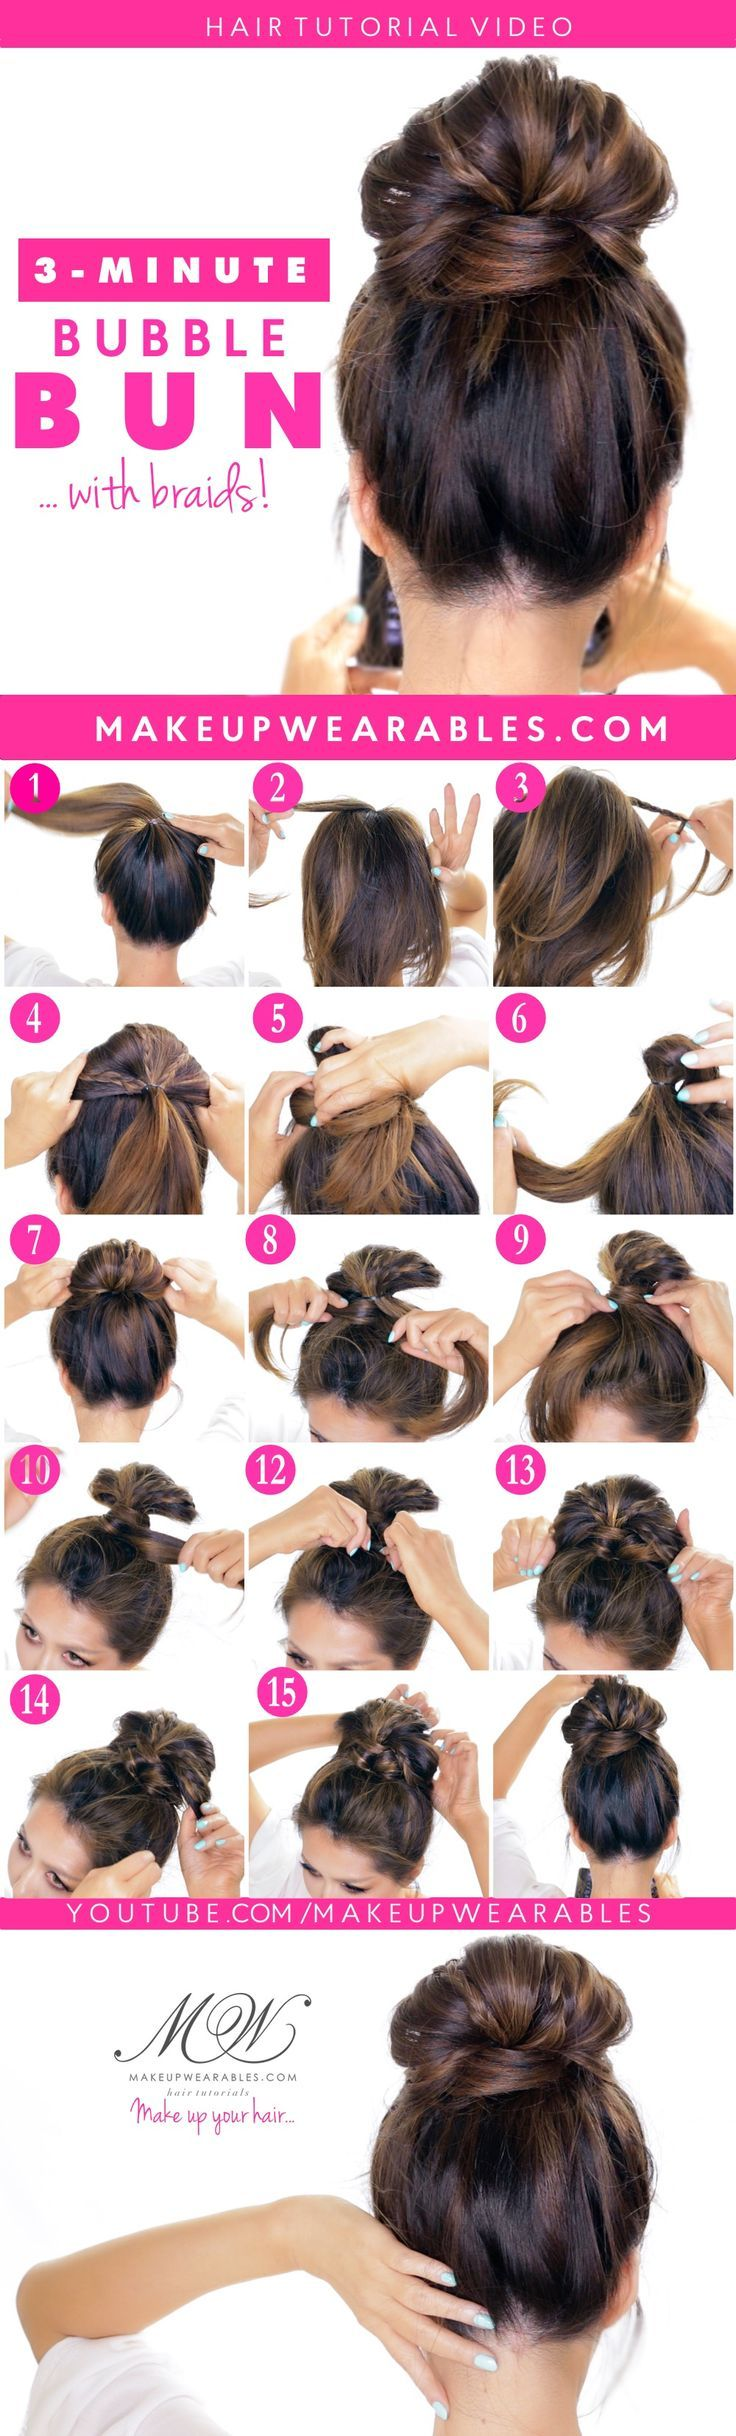 Easy Bubble Bun with Braids!  Cute Updo Hairstyles | #hair #style Nail Design, N...